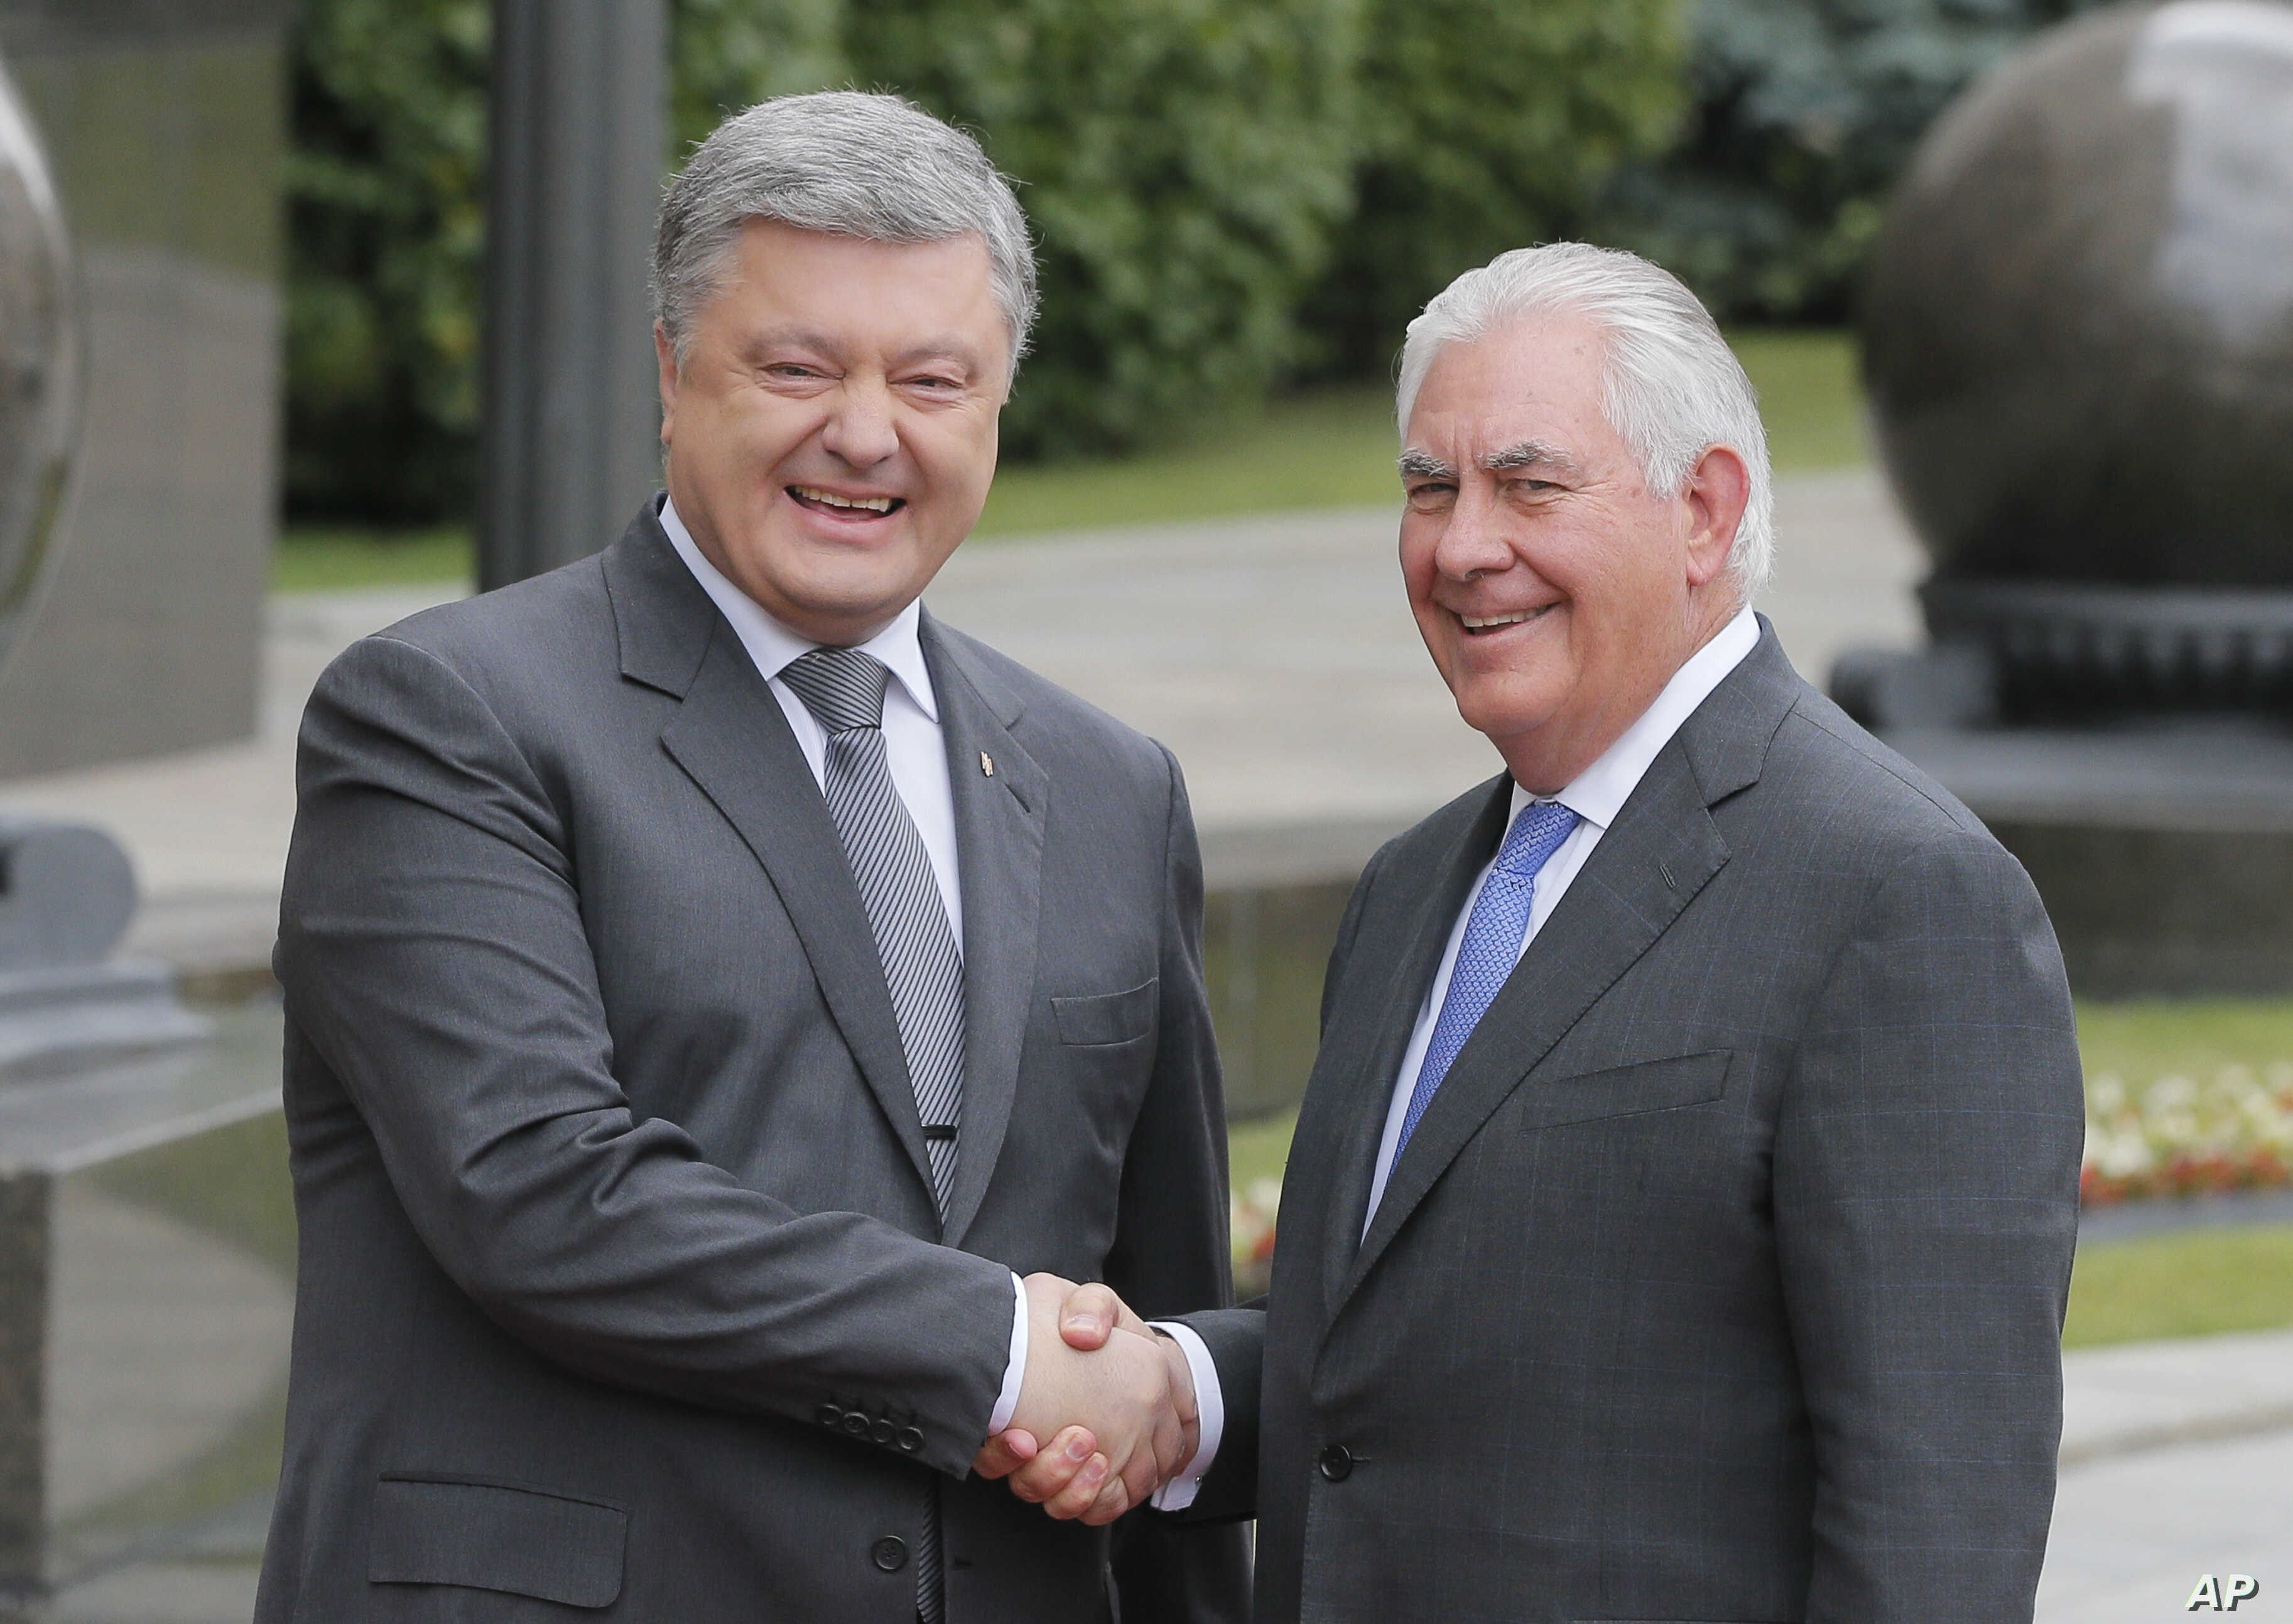 Ukrainian President Petro Poroshenko, left, and U.S. Secretary of State Rex Tillerson shakes hands before a meeting in Kyiv, Sunday, July 9, 2017.